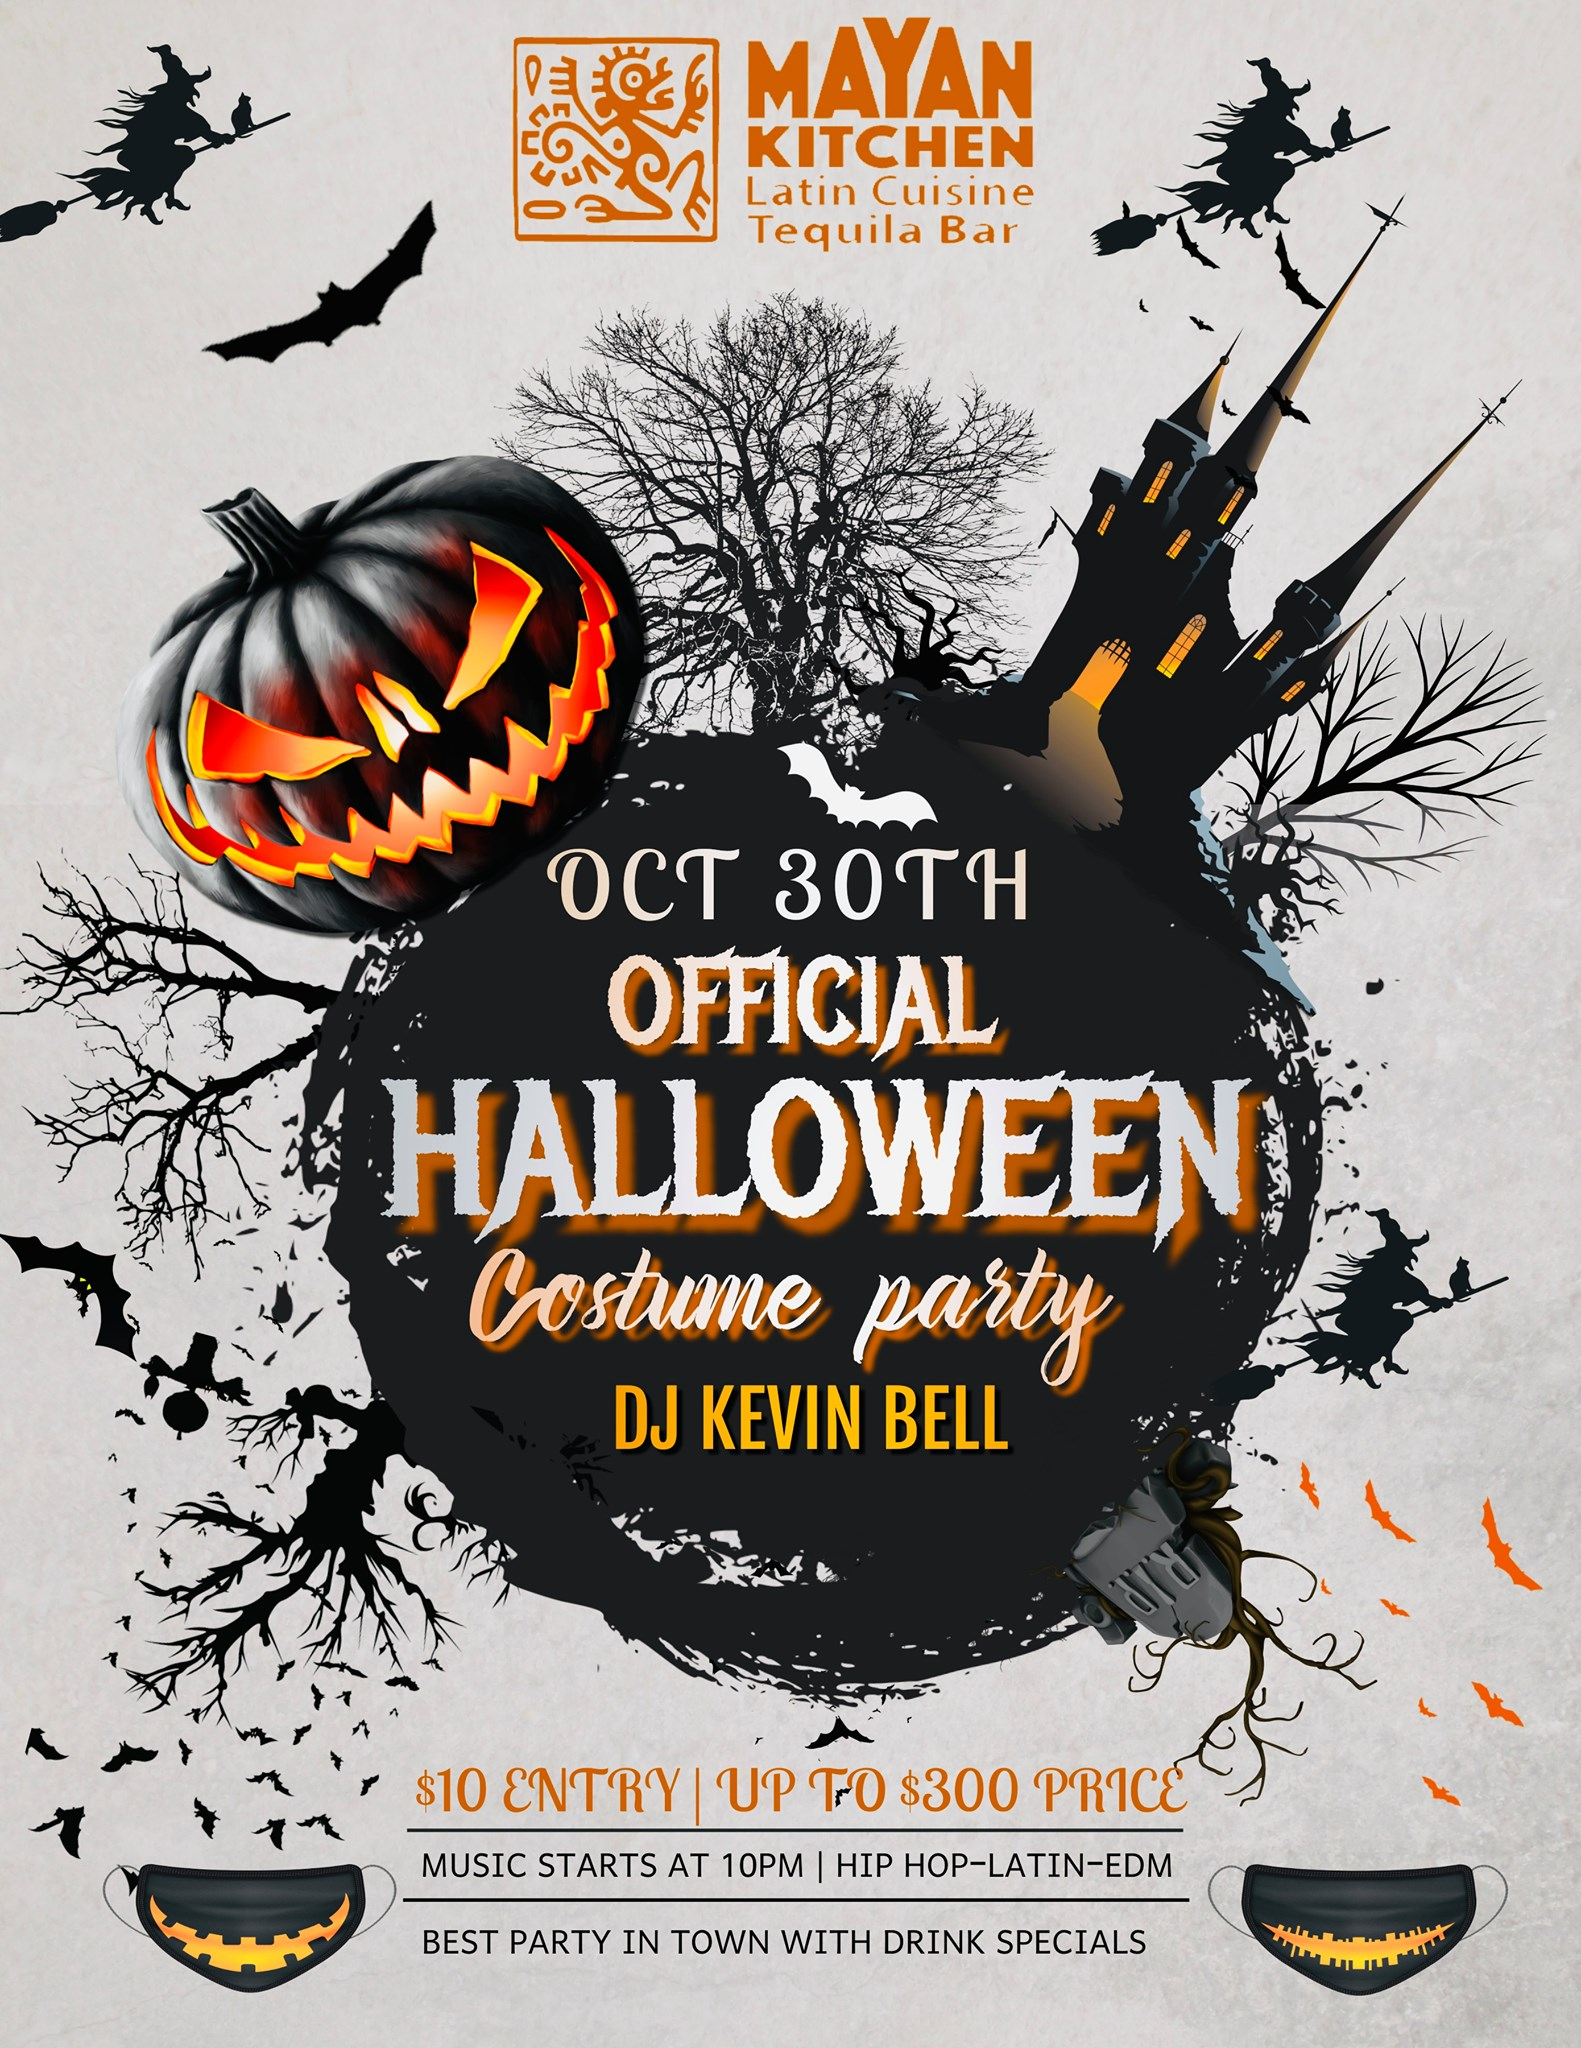 Official Halloween Costume Party!